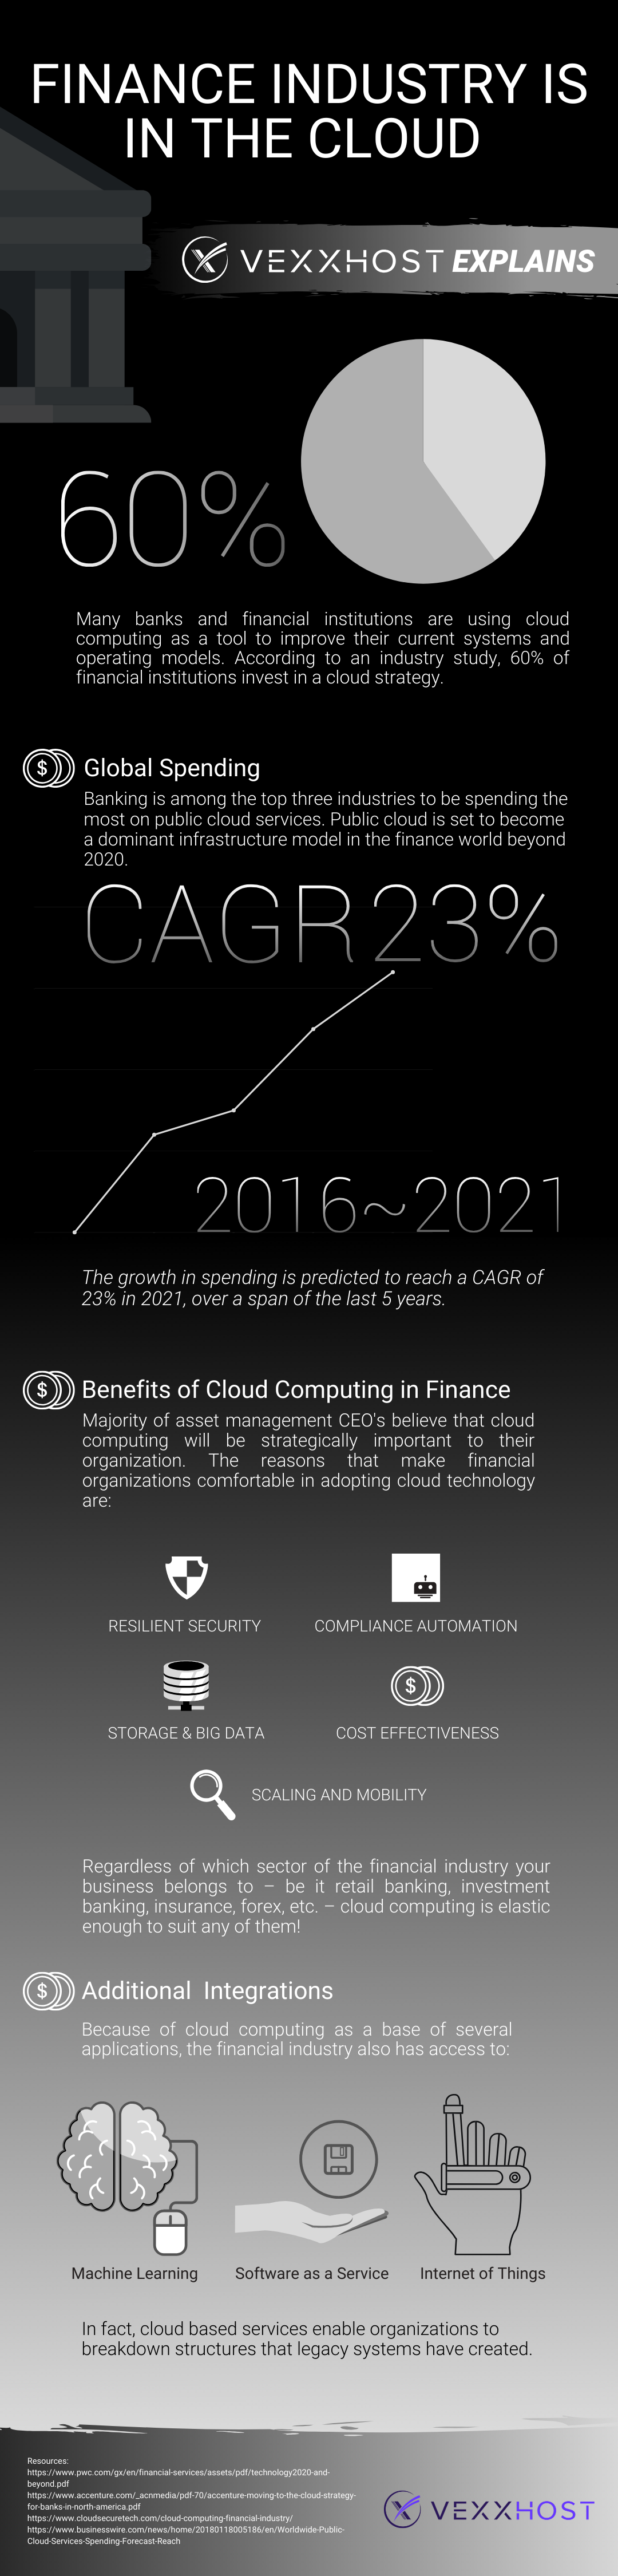 Finance Industry Cloud Computing